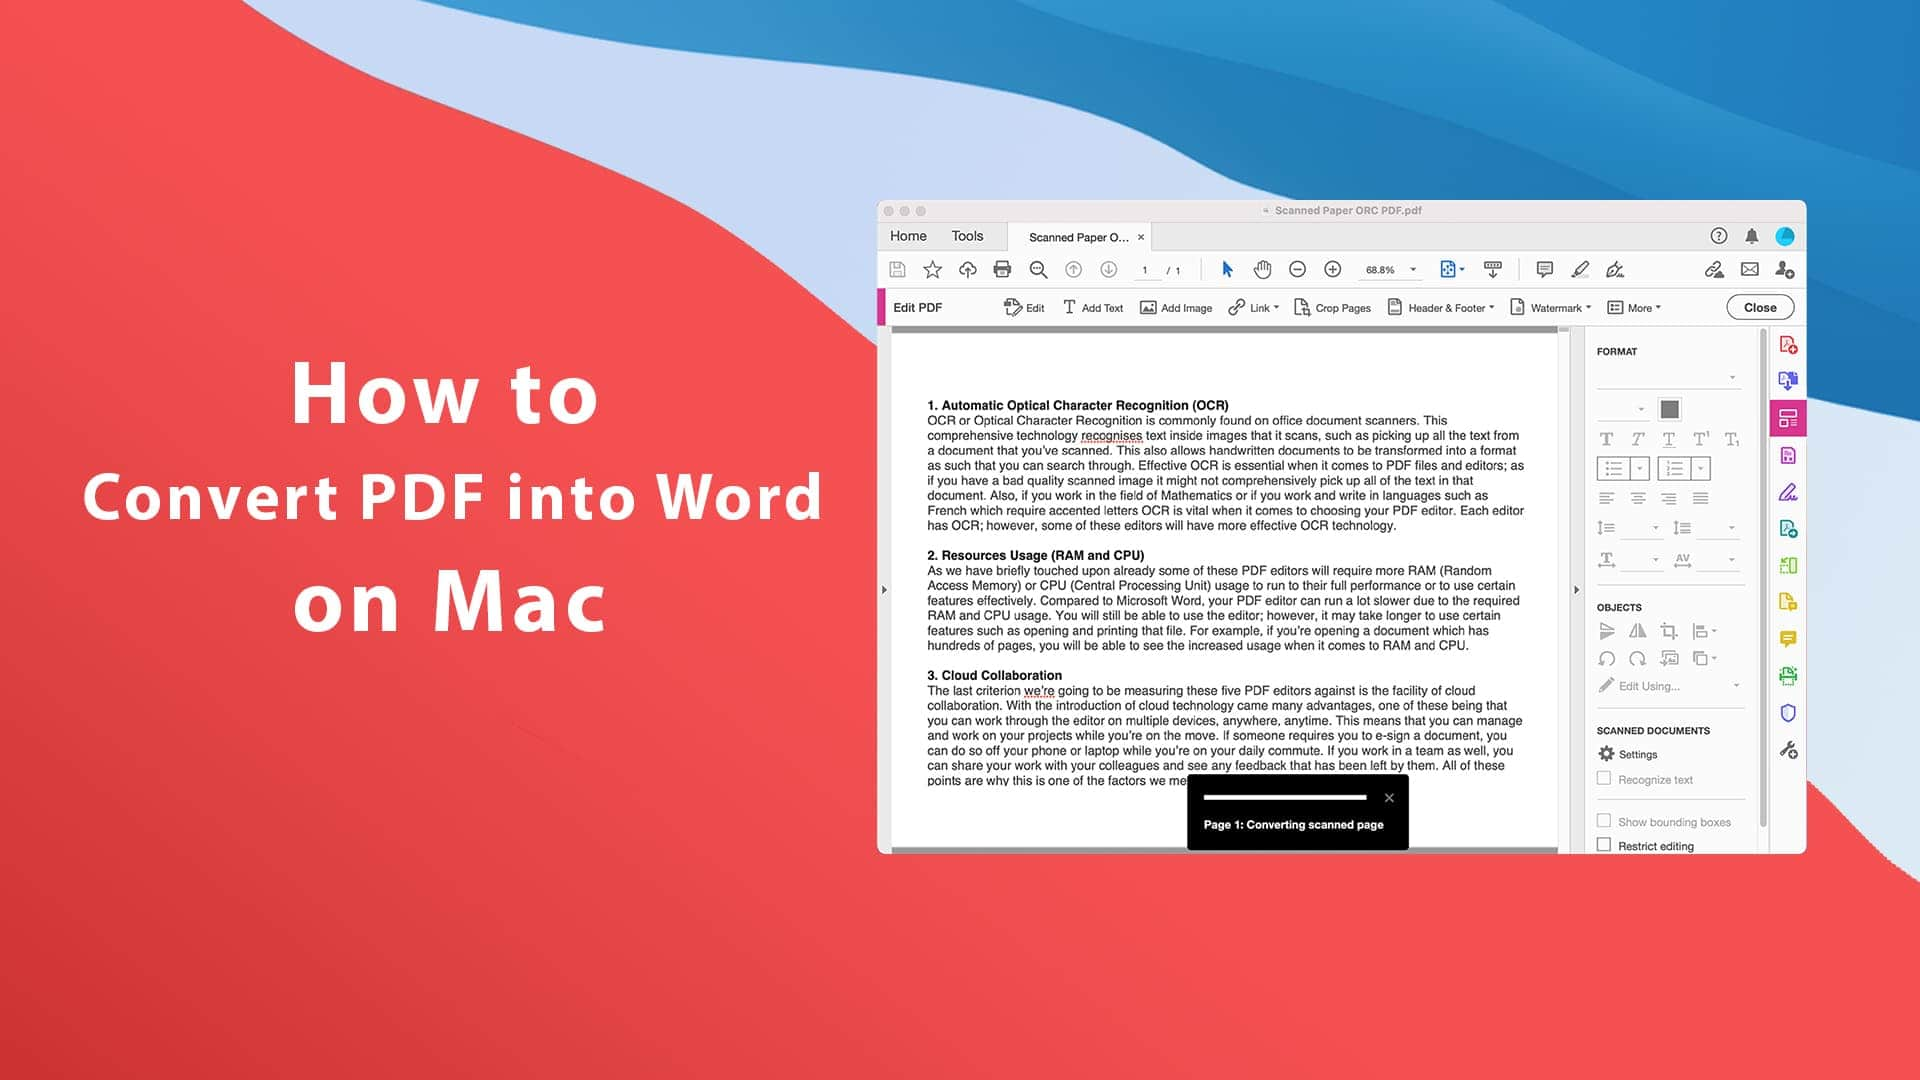 How to Convert PDF into Word on Mac